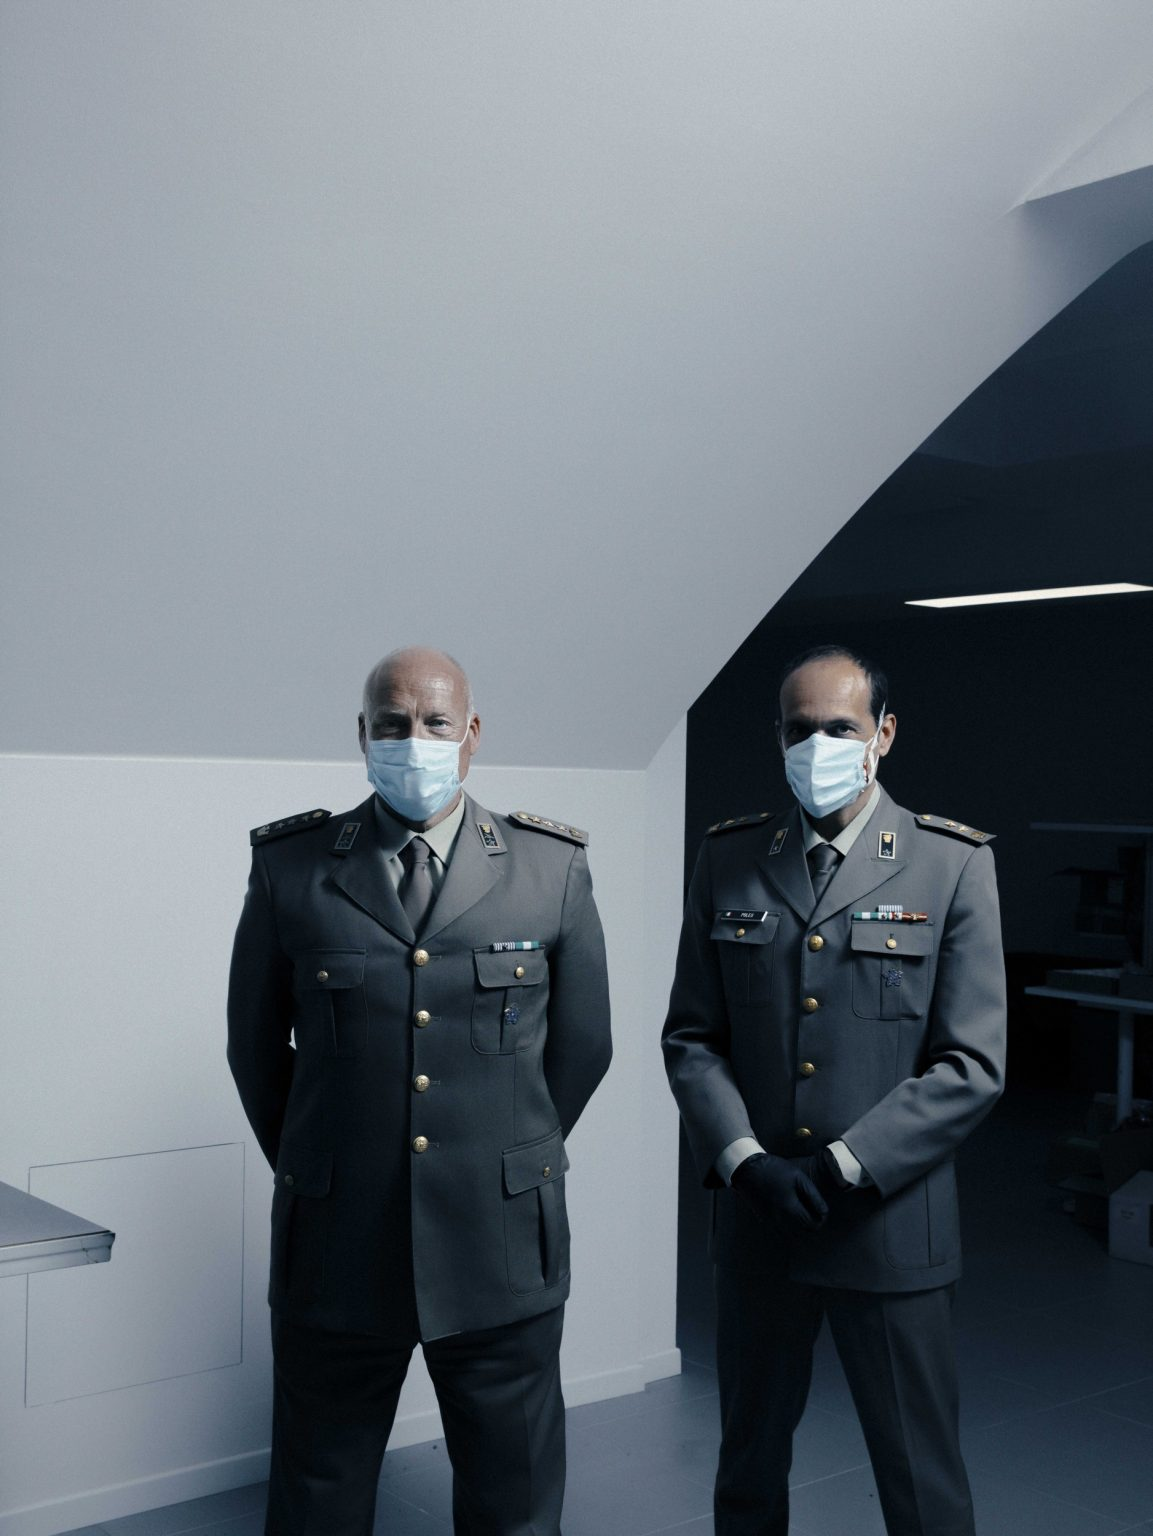 Inside Siare Engineering. «Five hundred lung ventilators per month for four months, from an average of 150 in normal times: the effort to which we have been called is titanic. the company that will provide civil protection with the machines necessary to take care of the most serious patients of Covid-19.  In this image: Colonel Giulio Botto (left) is the operation manager, together with Colonel, vice manager. Valsamoggia, Bologna, Italy, 2020